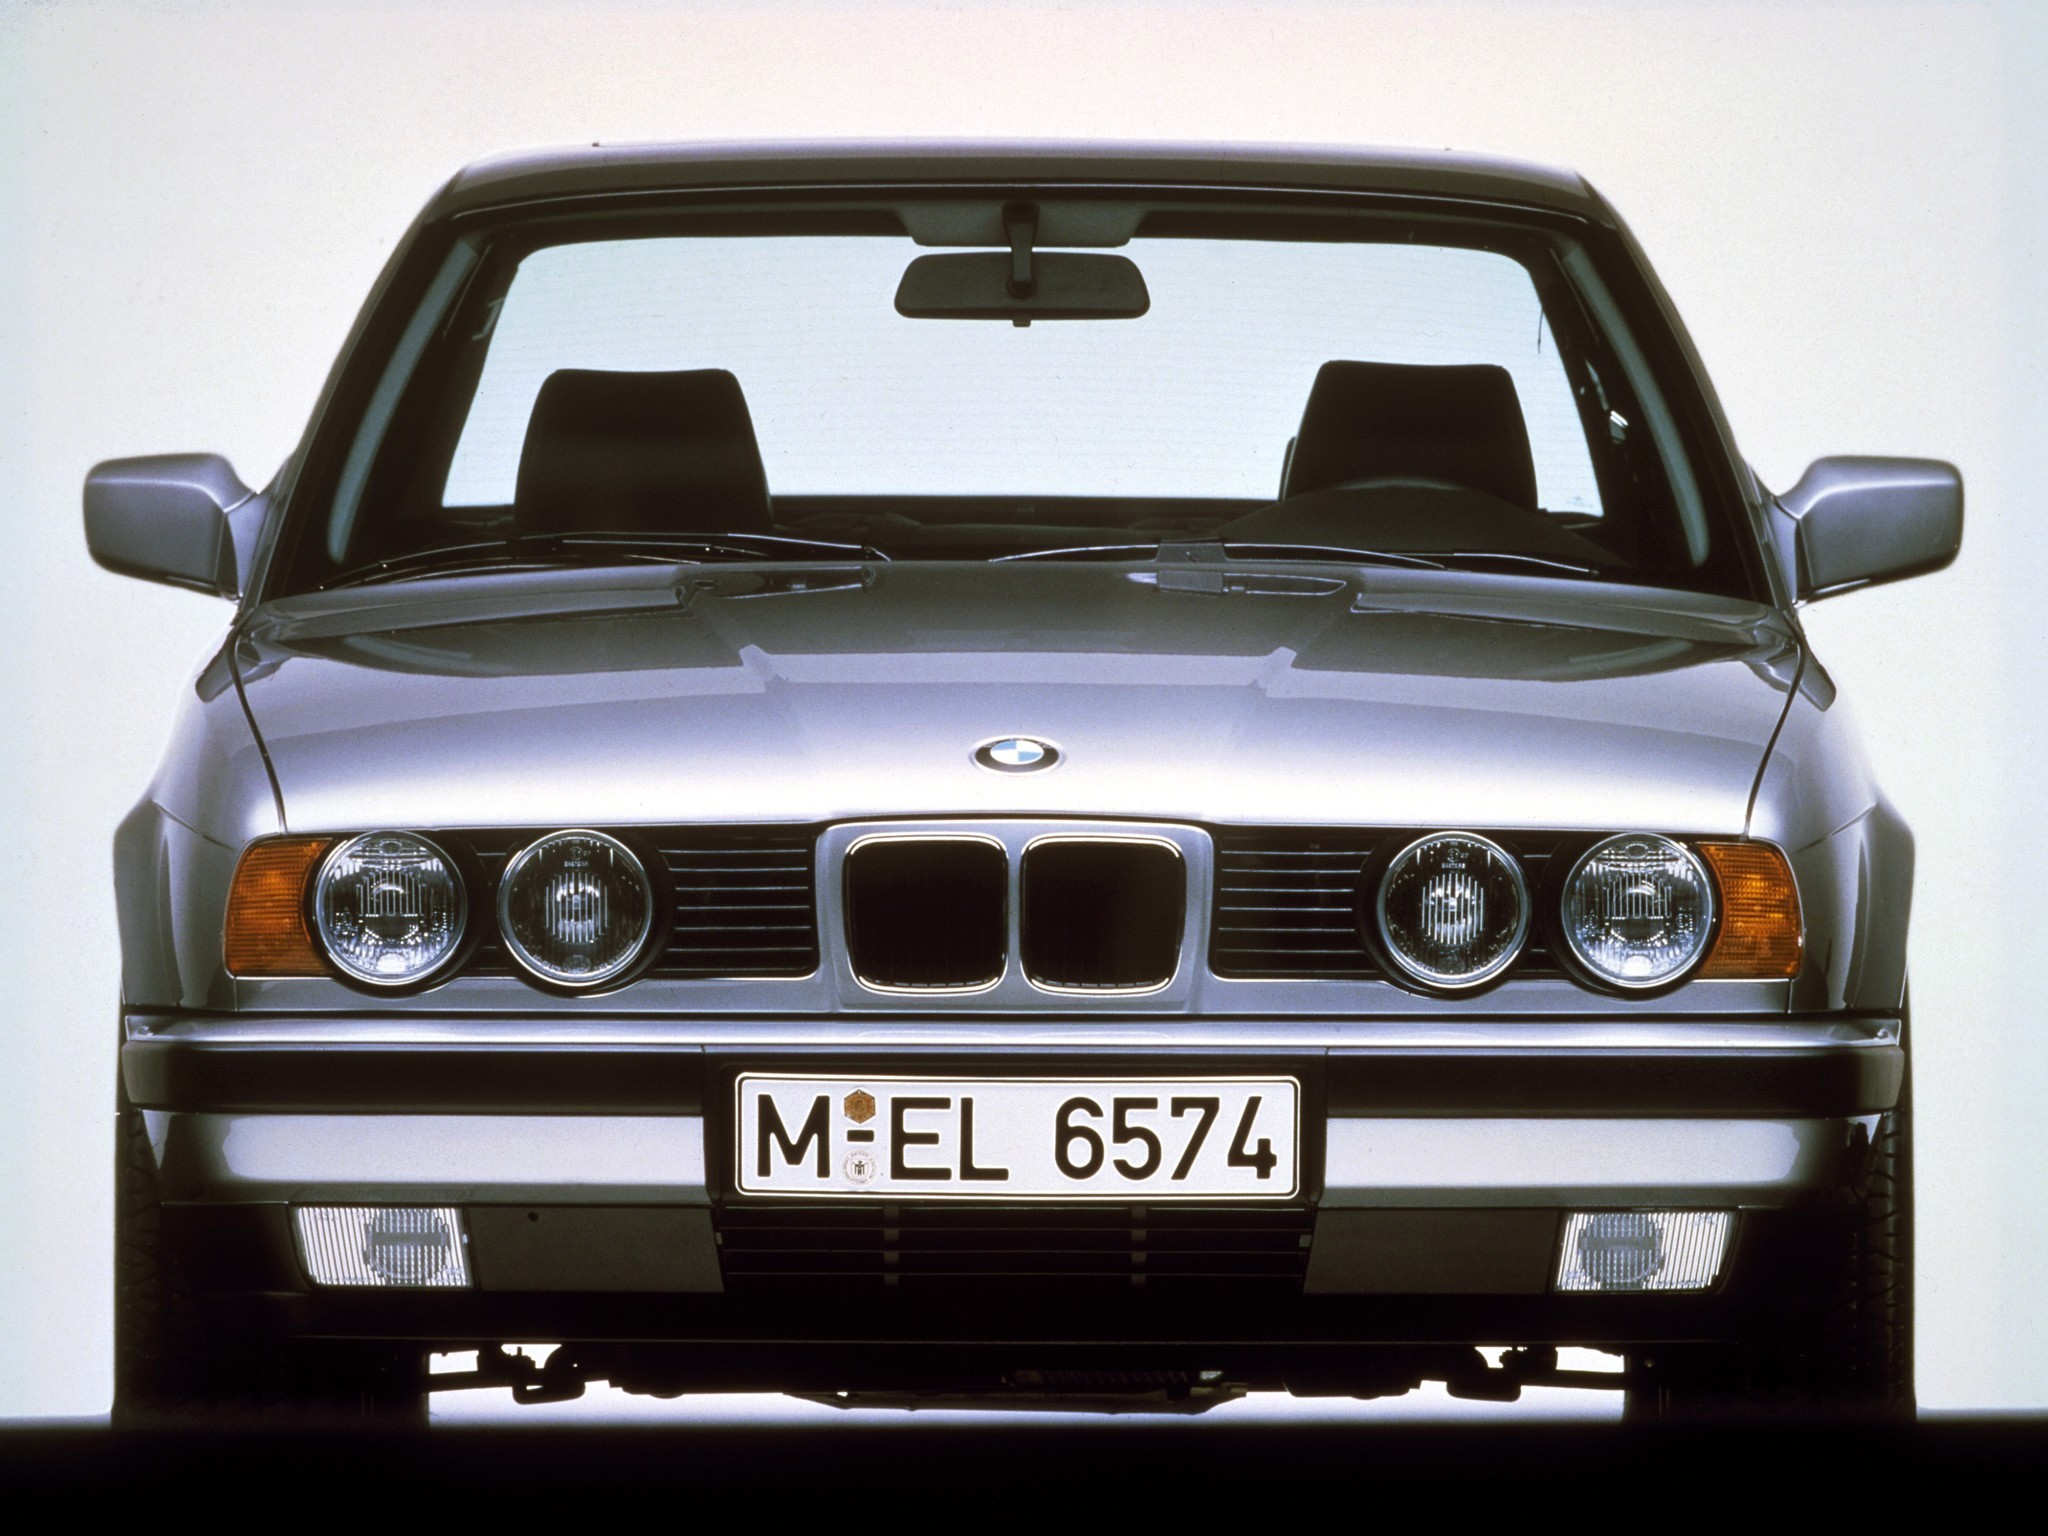 BMW 5 series 530i 1988 photo - 1